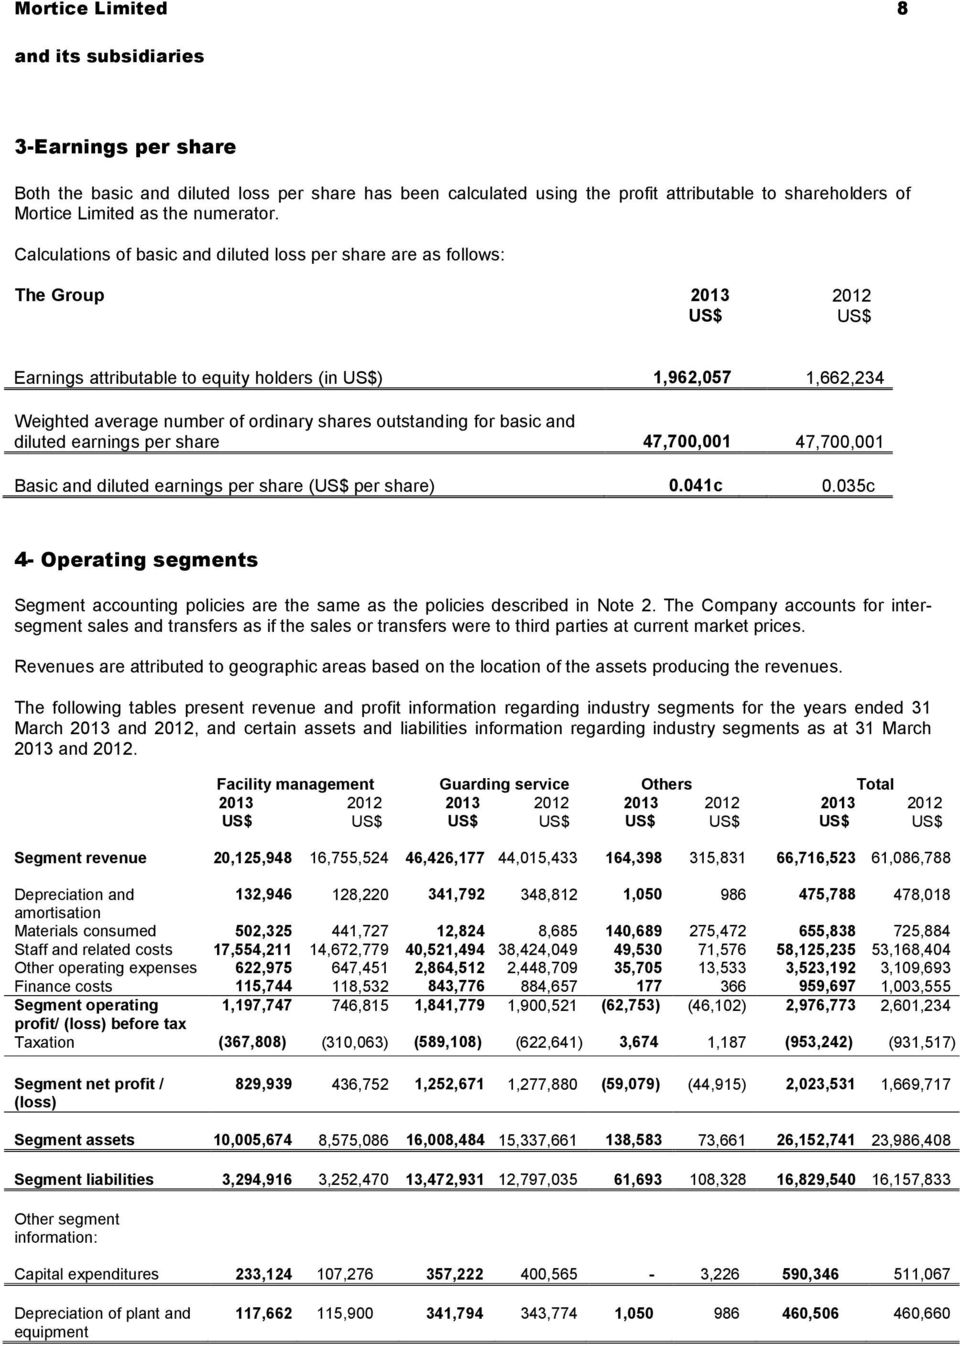 shares outstanding for basic and diluted earnings per share 47,700,001 47,700,001 Basic and diluted earnings per share (US$ per share) 0.041c 0.